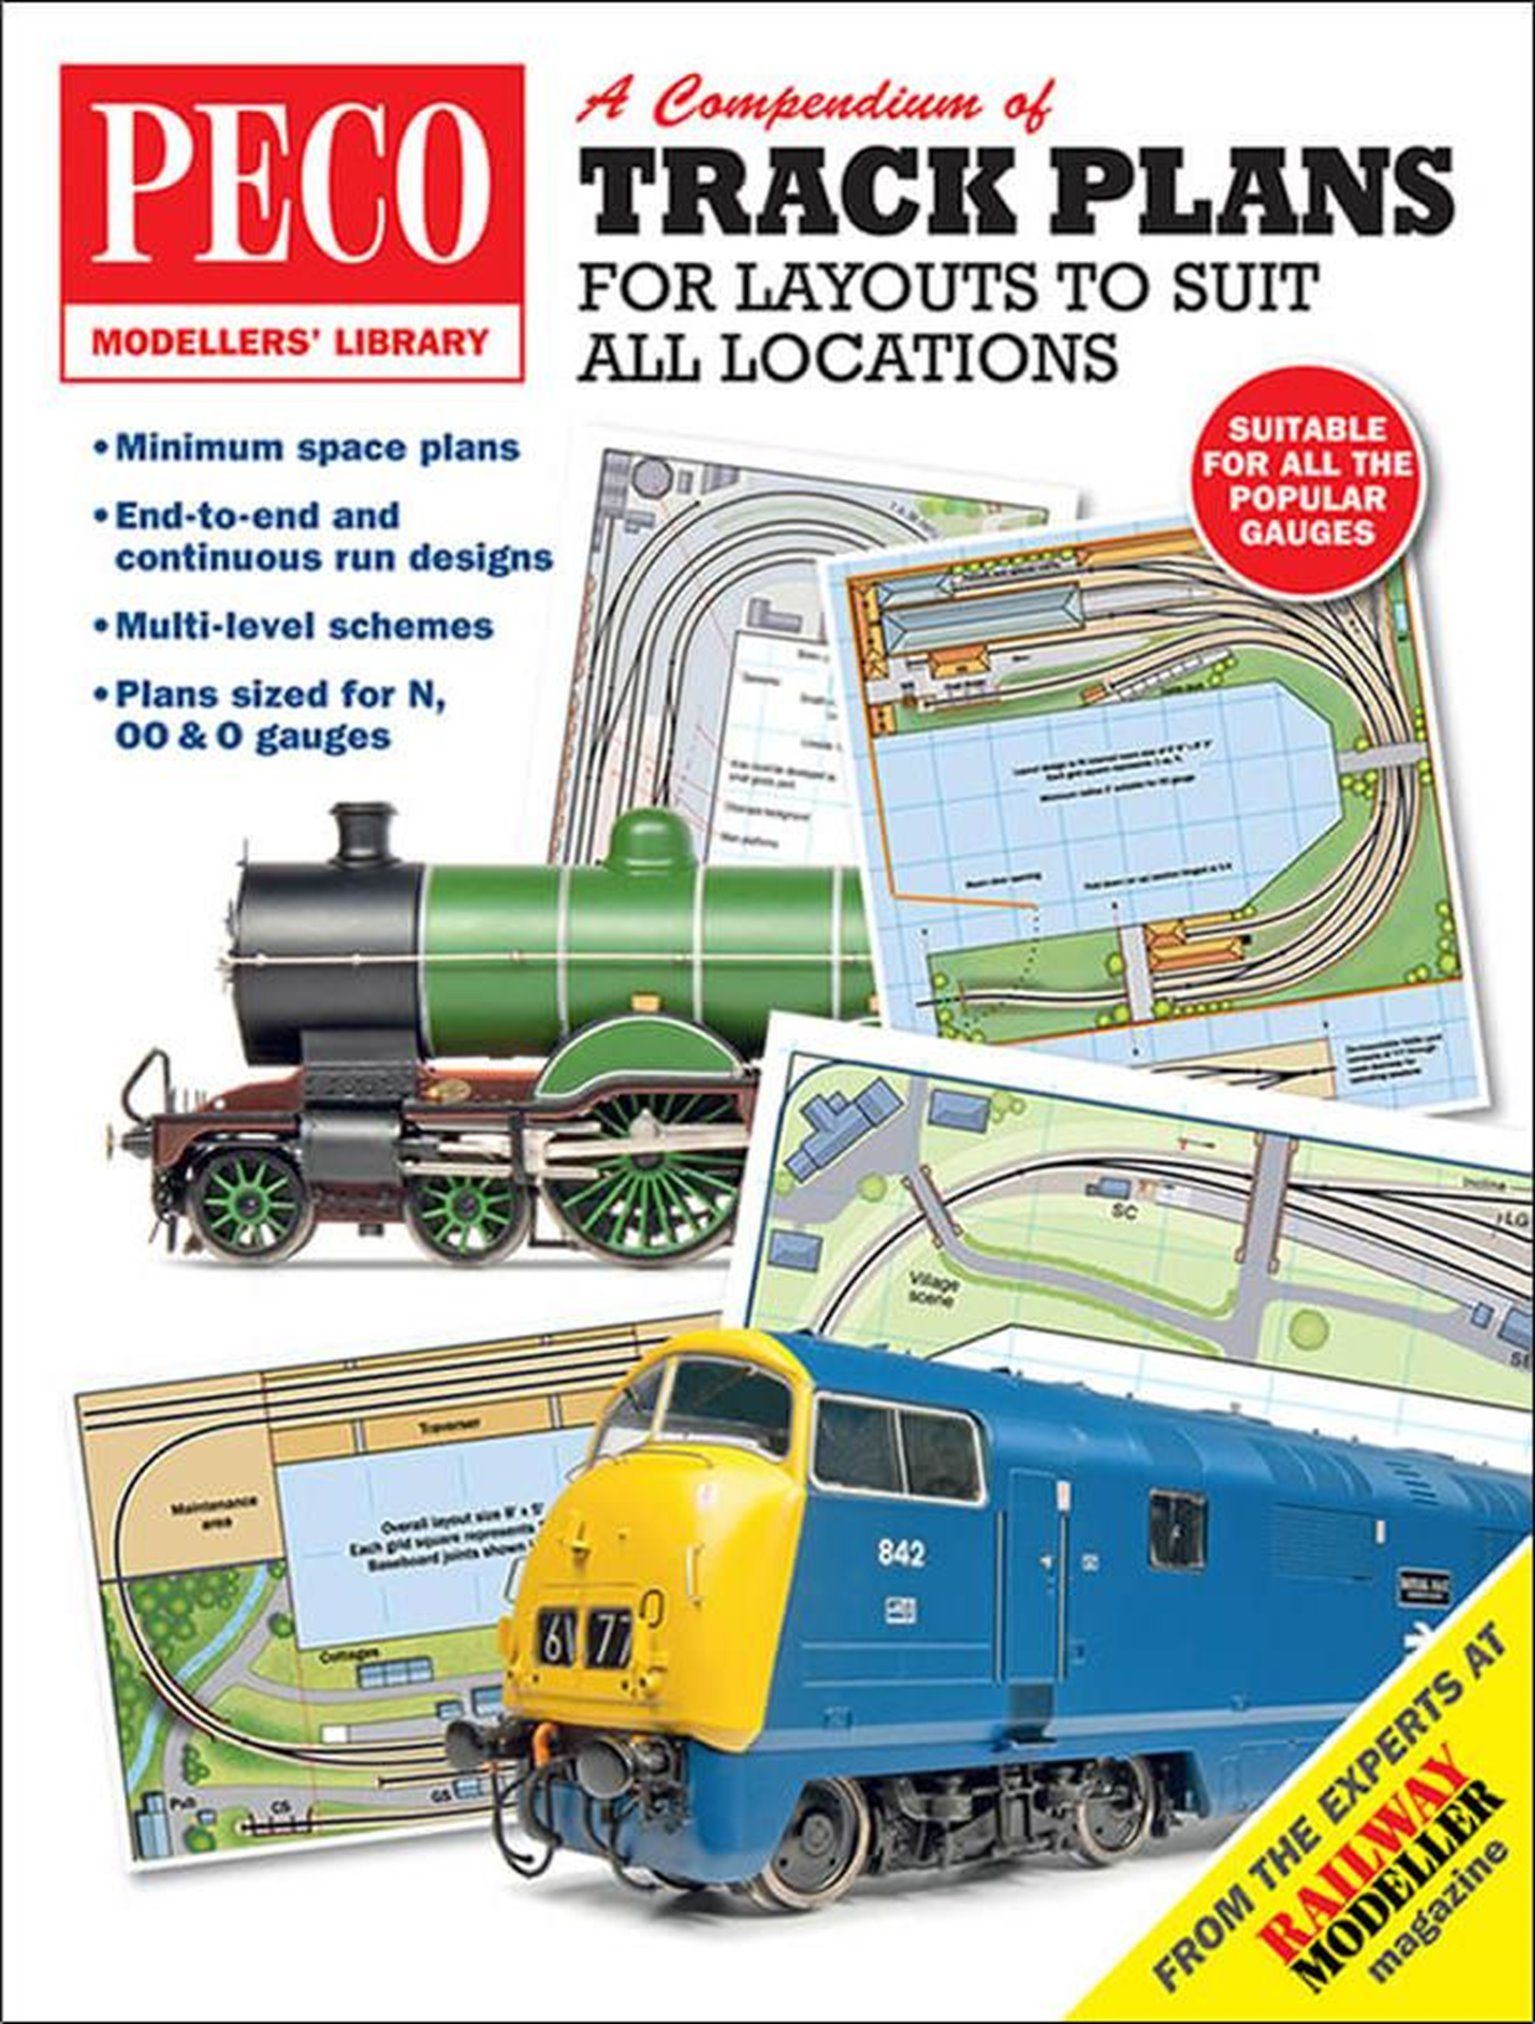 PM-202 A Compendium of track plans